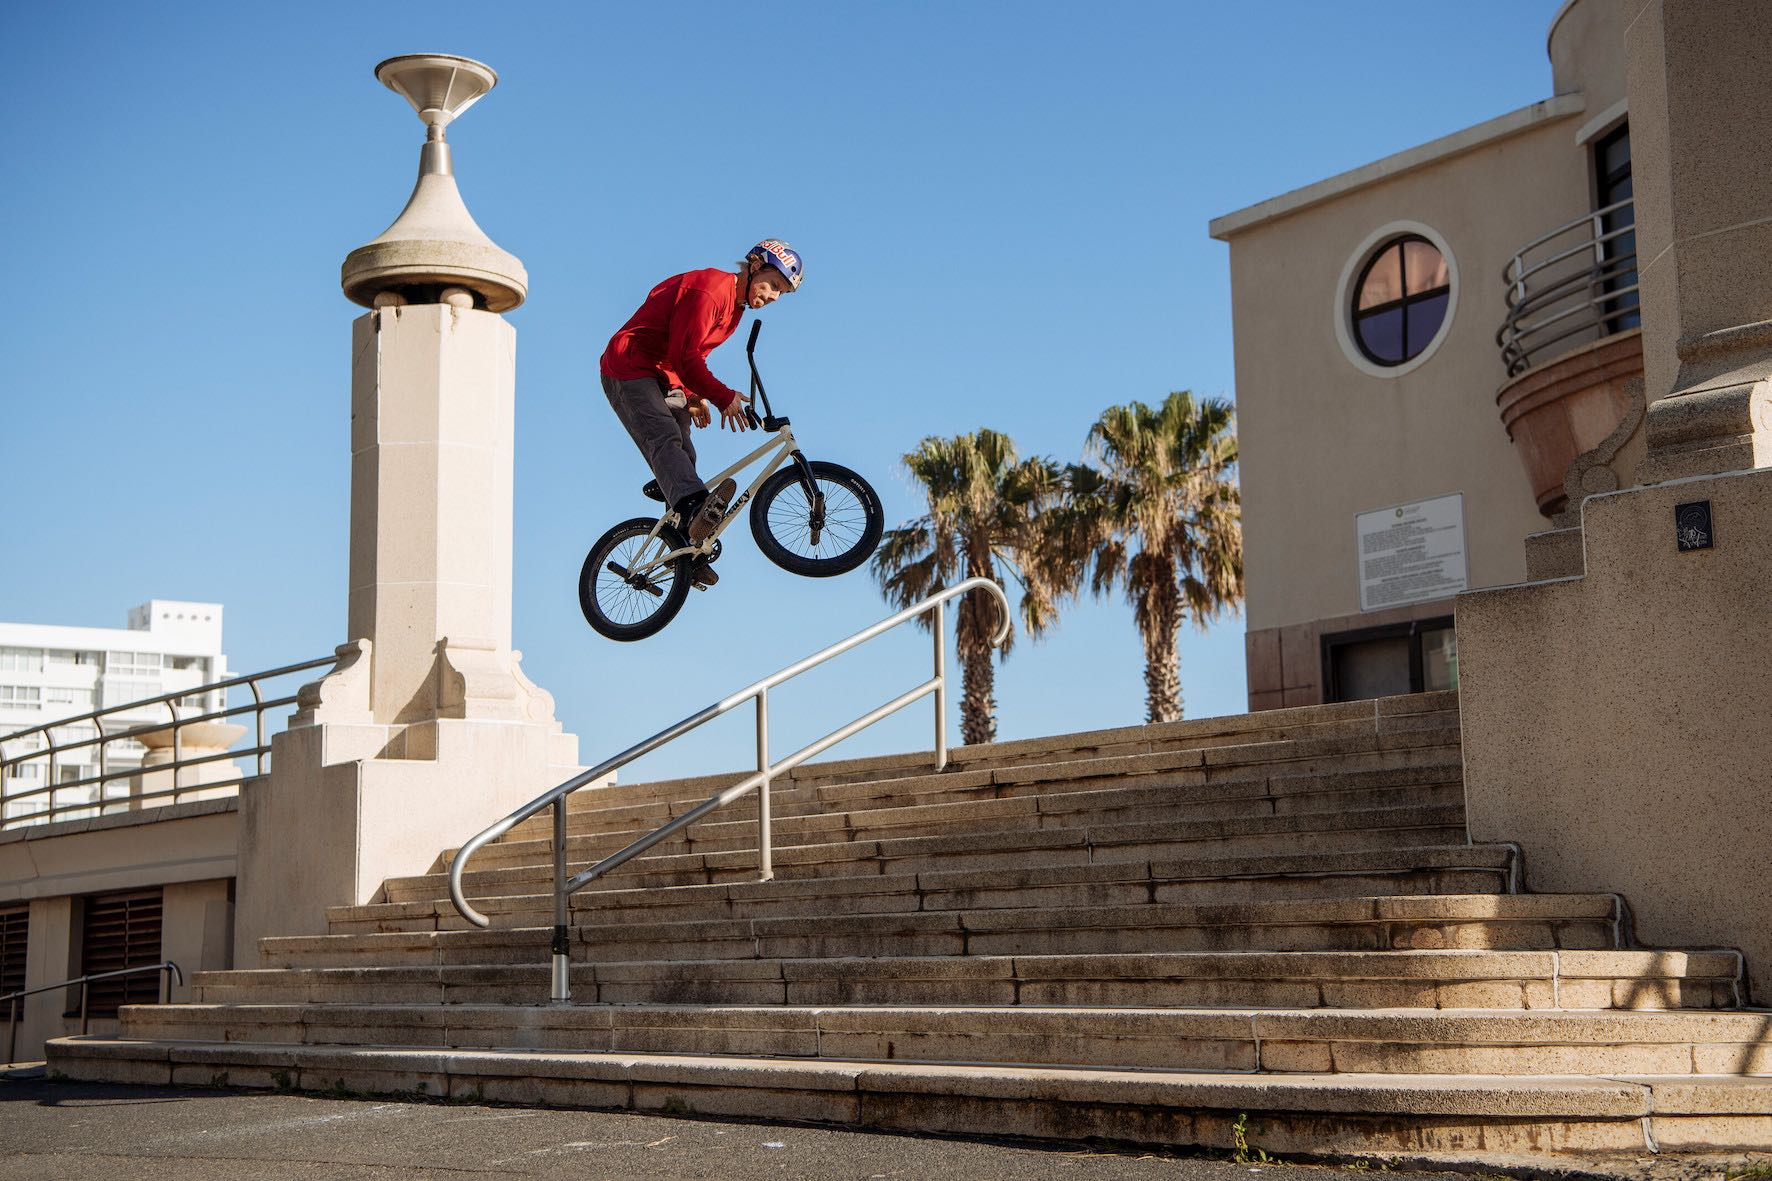 BMX Street riding with Murray Loubser for his Shapes in the City video project